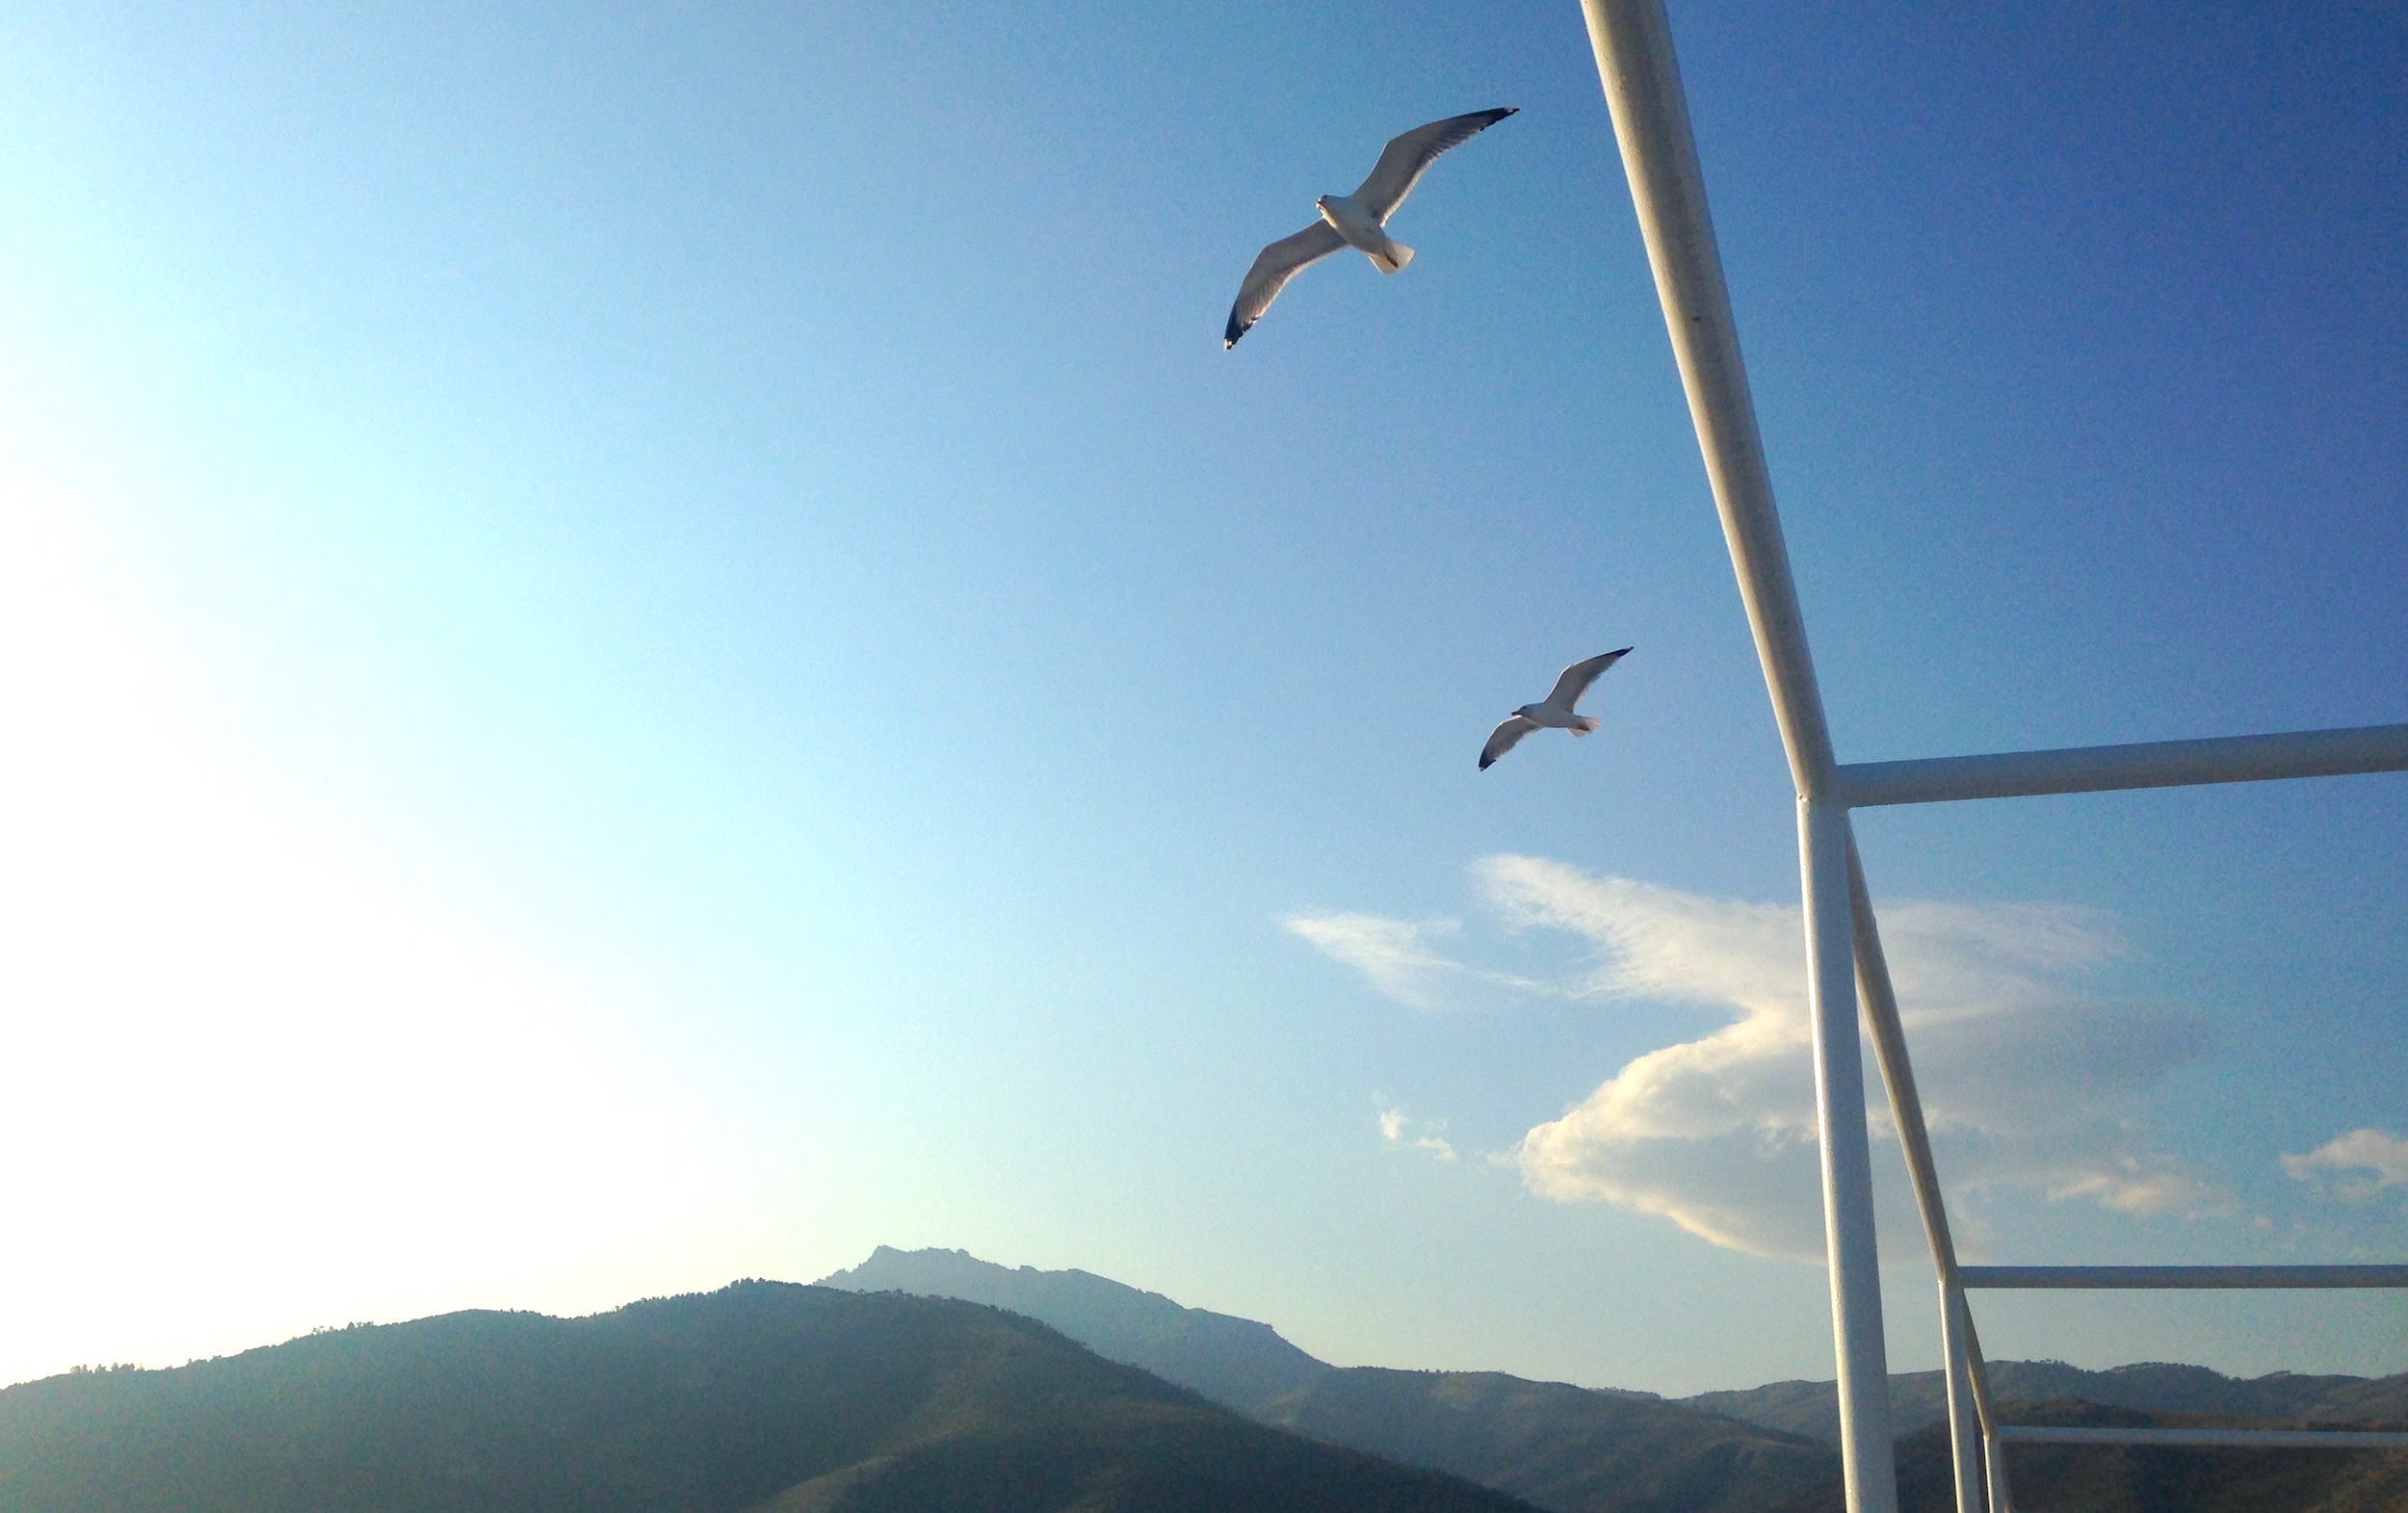 Seagulls flying over the early morning ferry as it leaves the island of Thassos, Greece.